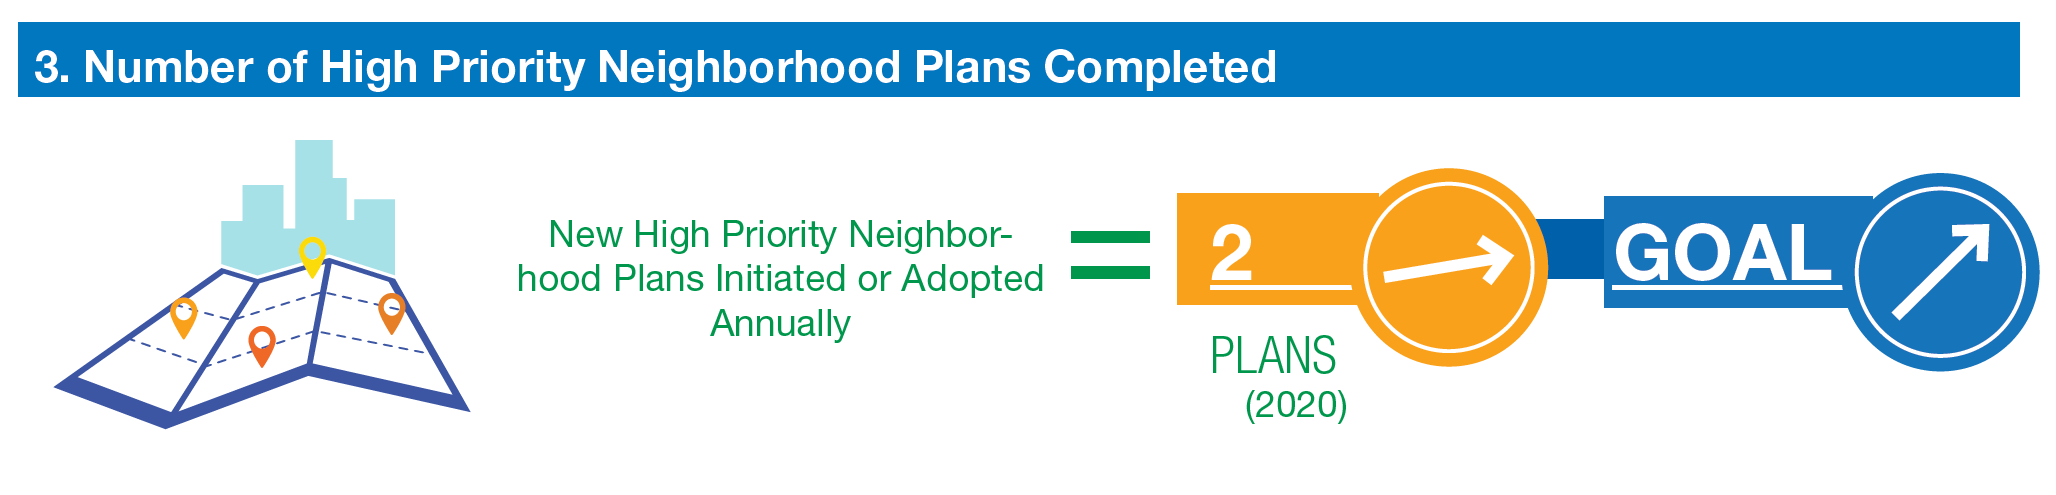 number of high priority neighborhood plans completed. two. trending slightly up. goal is to increase.